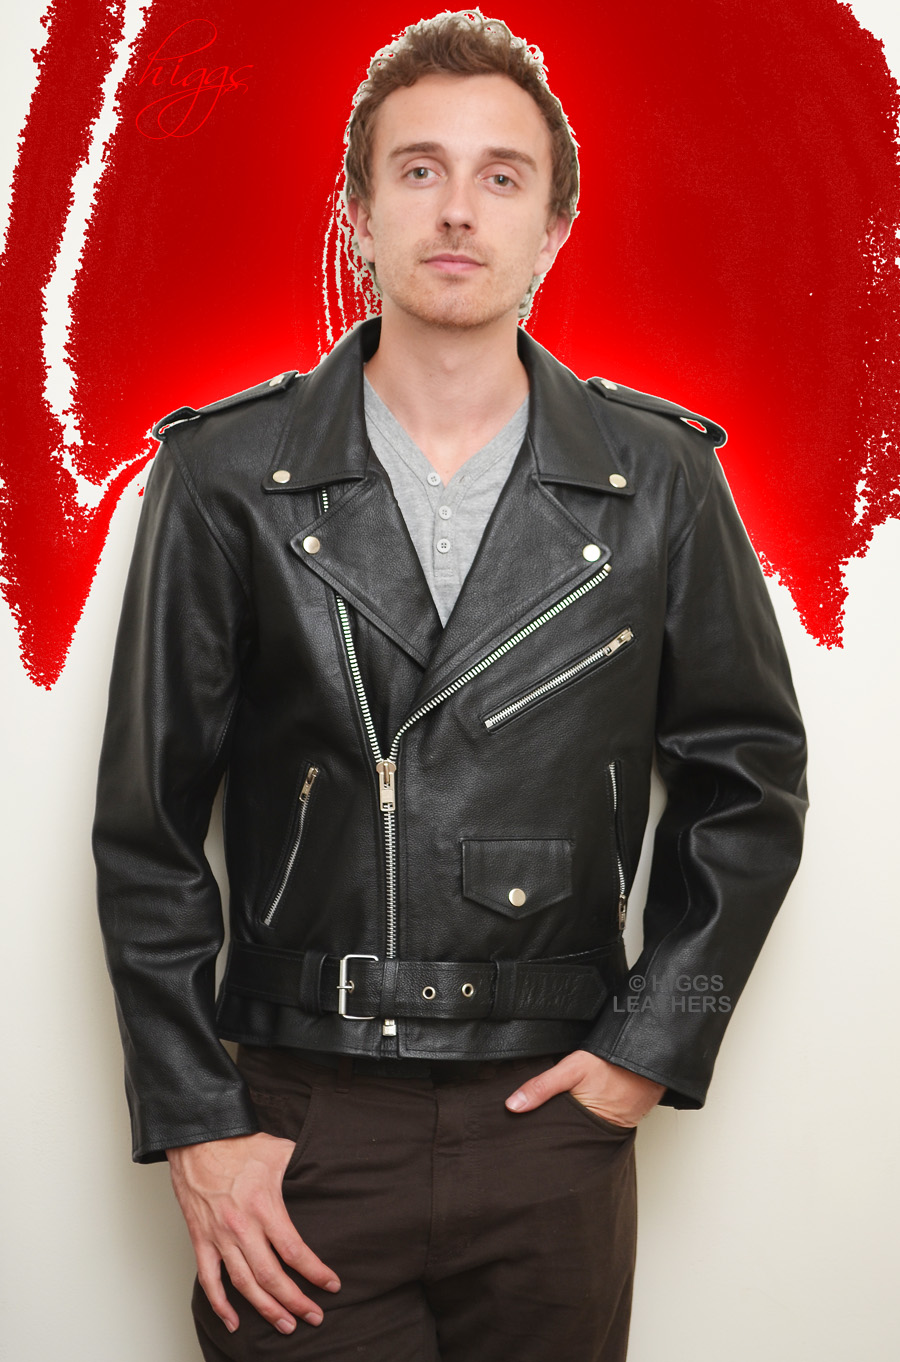 Higgs Leathers {ONE ONLY SAVE £40!}  Brando (motorcycle Black Leather jacket for men) INCREDIBLE VALUE!